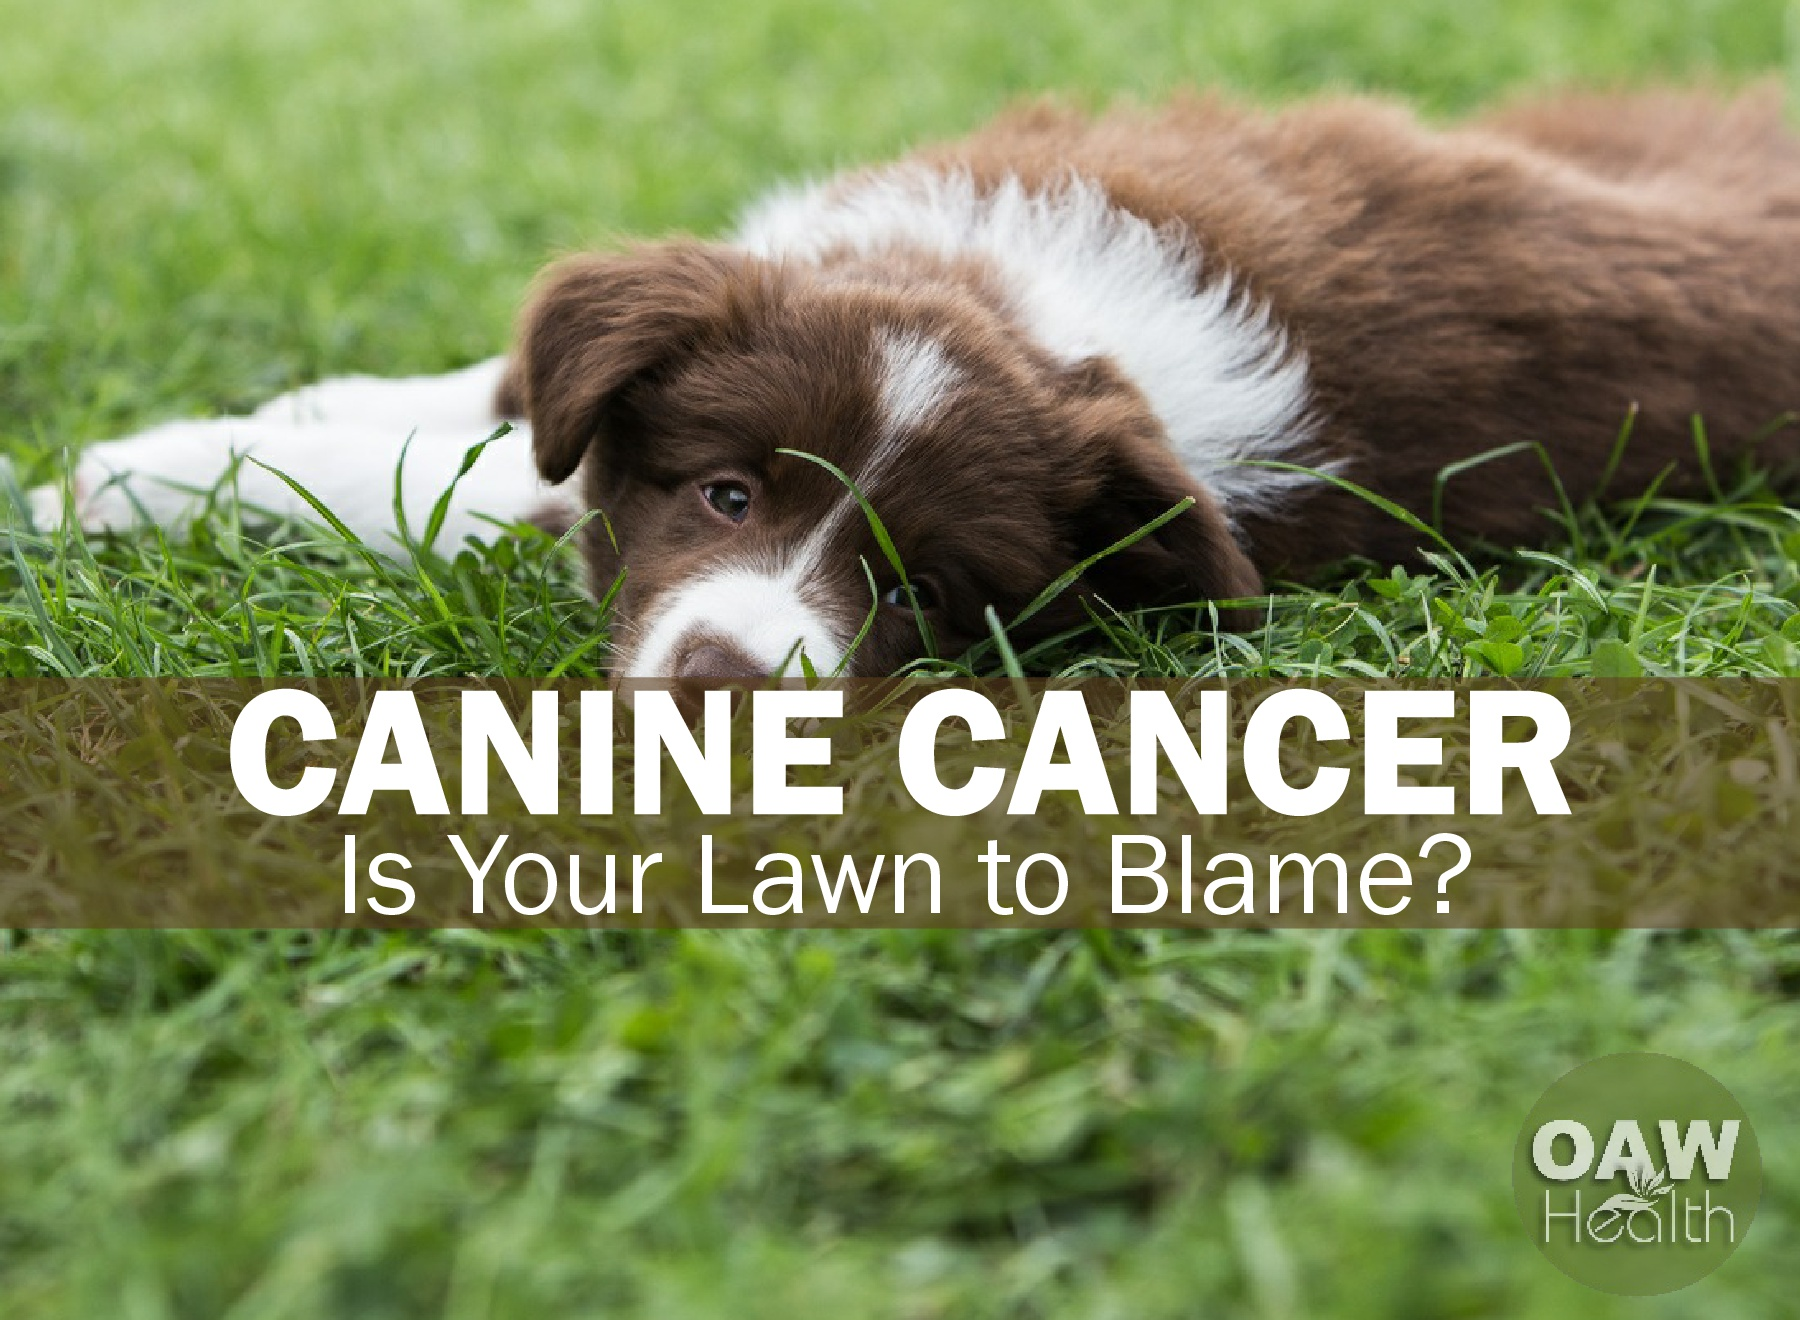 Canine Cancer: Is Your Lawn to Blame?